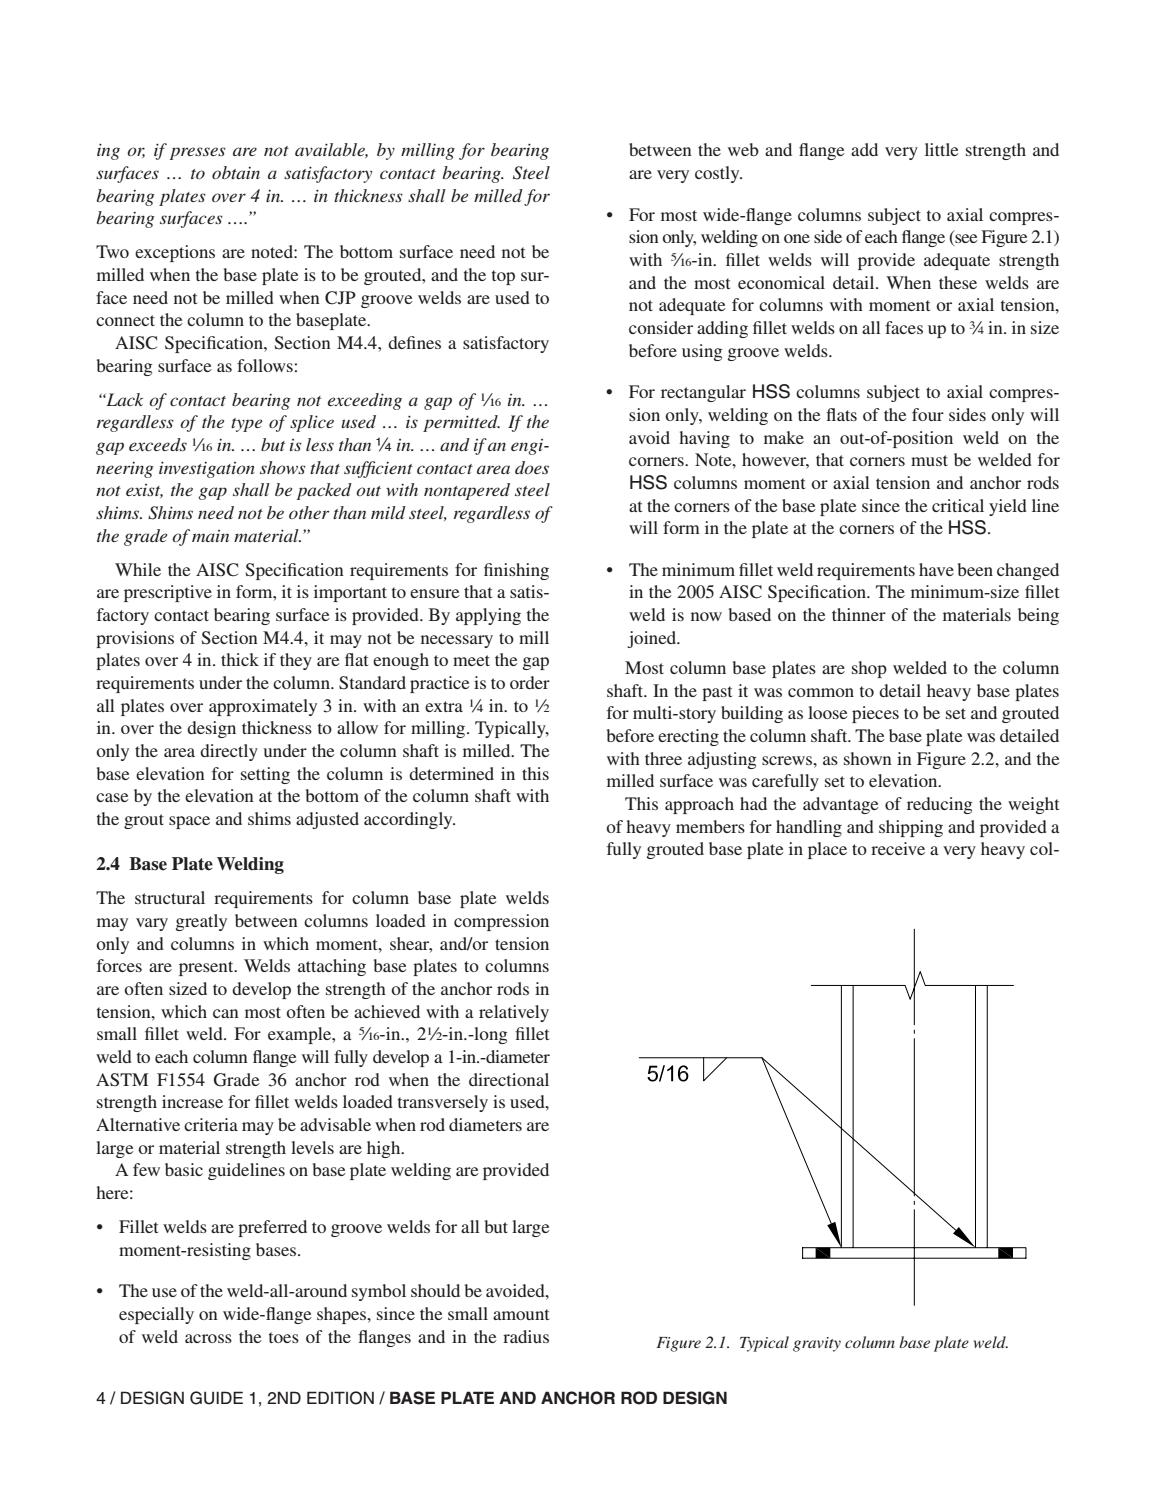 Aisc Design Guide 01 Base Plate And Anchor Rod Design 2nd Ed By